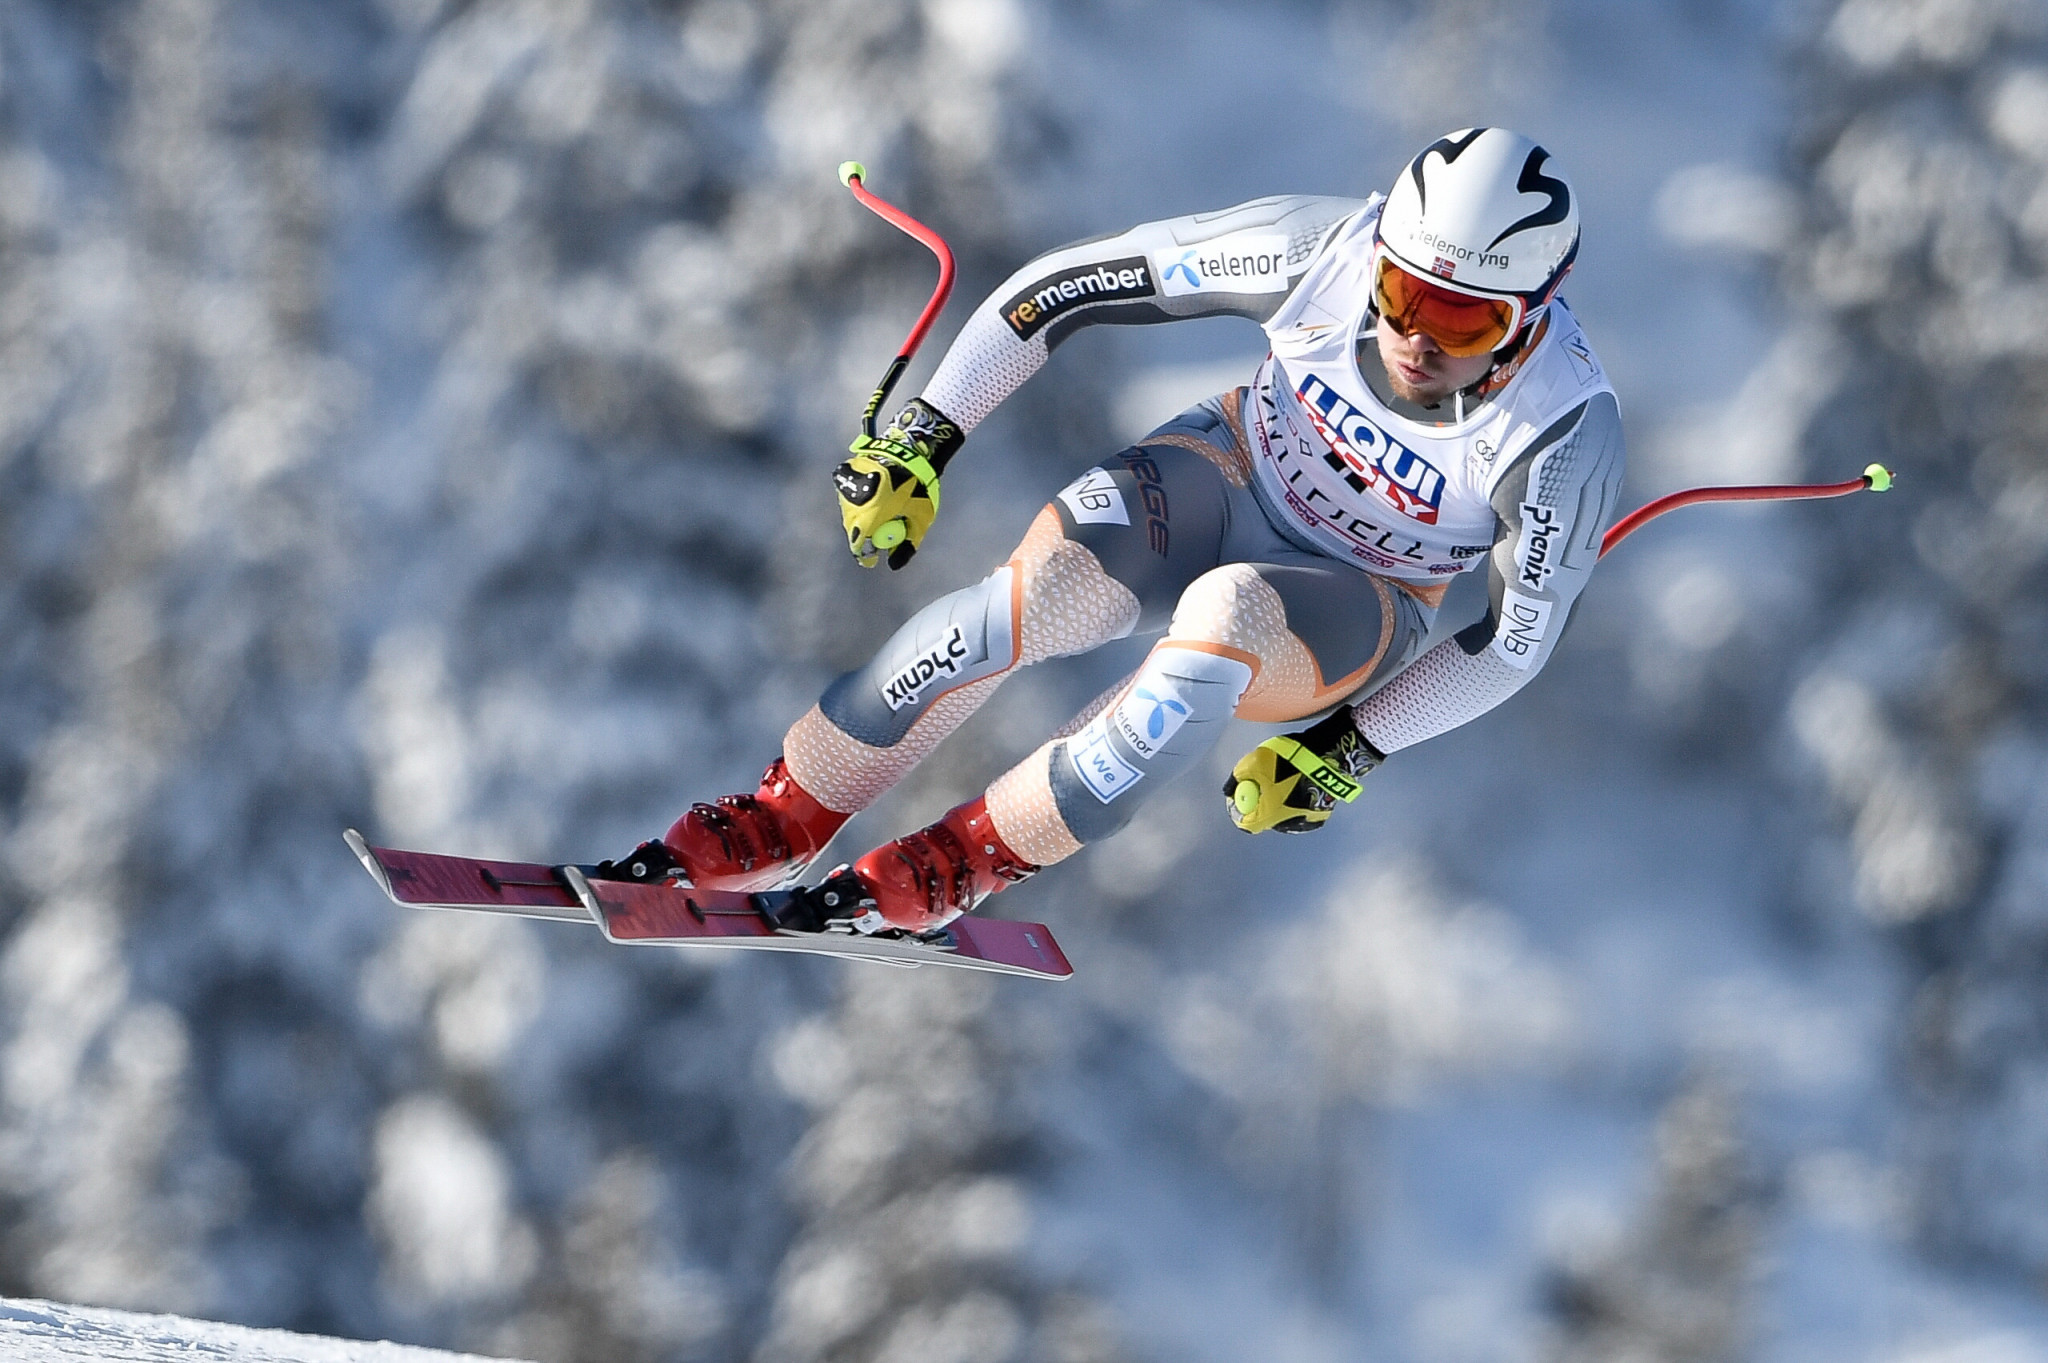 Aleksander Aamodt Kilde of Norway moved to the top of the FIS Alpine Ski World Cup standings ©Getty Images